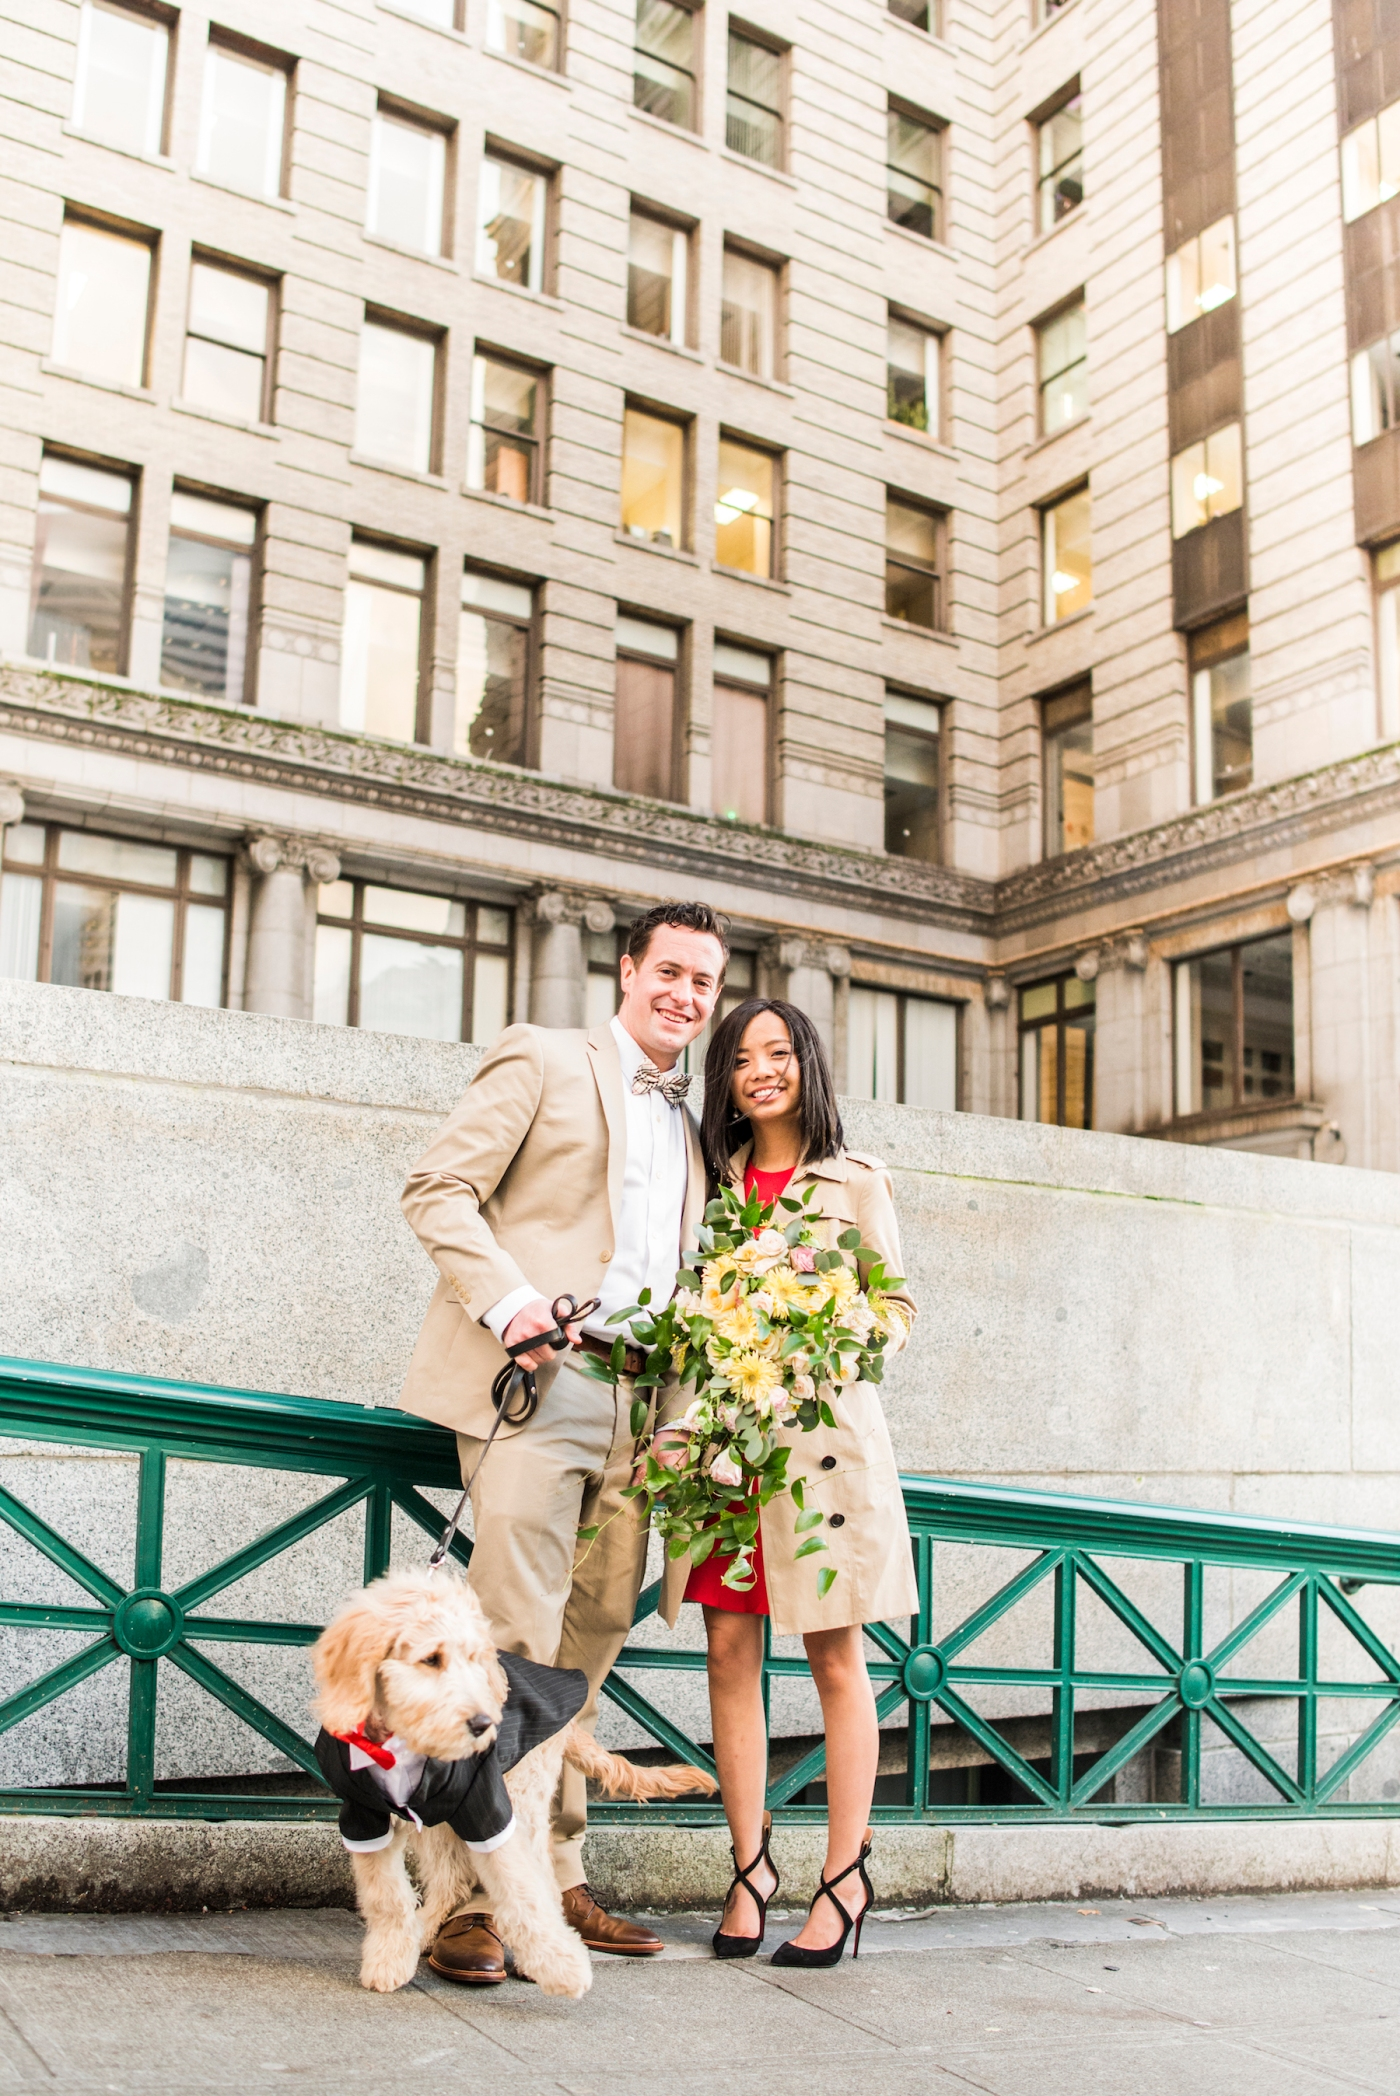 photography_by_jane_speleers_2017_seattle_court_house_wedding-dsc_9276